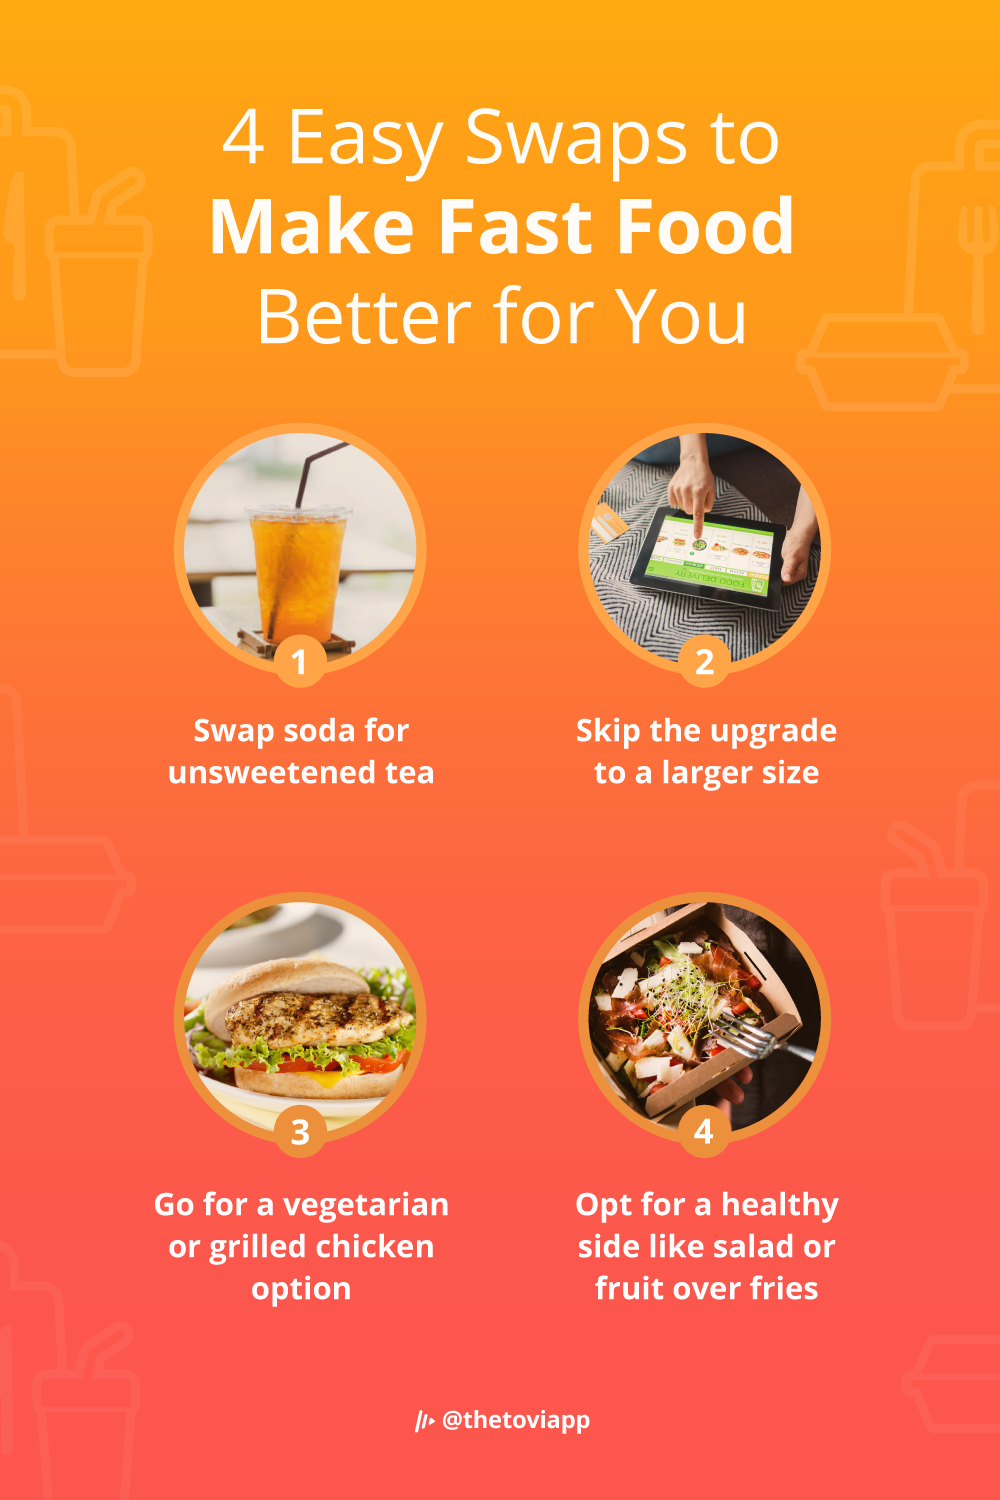 An infographic explaining 4 easy swaps to make fast food better for you.